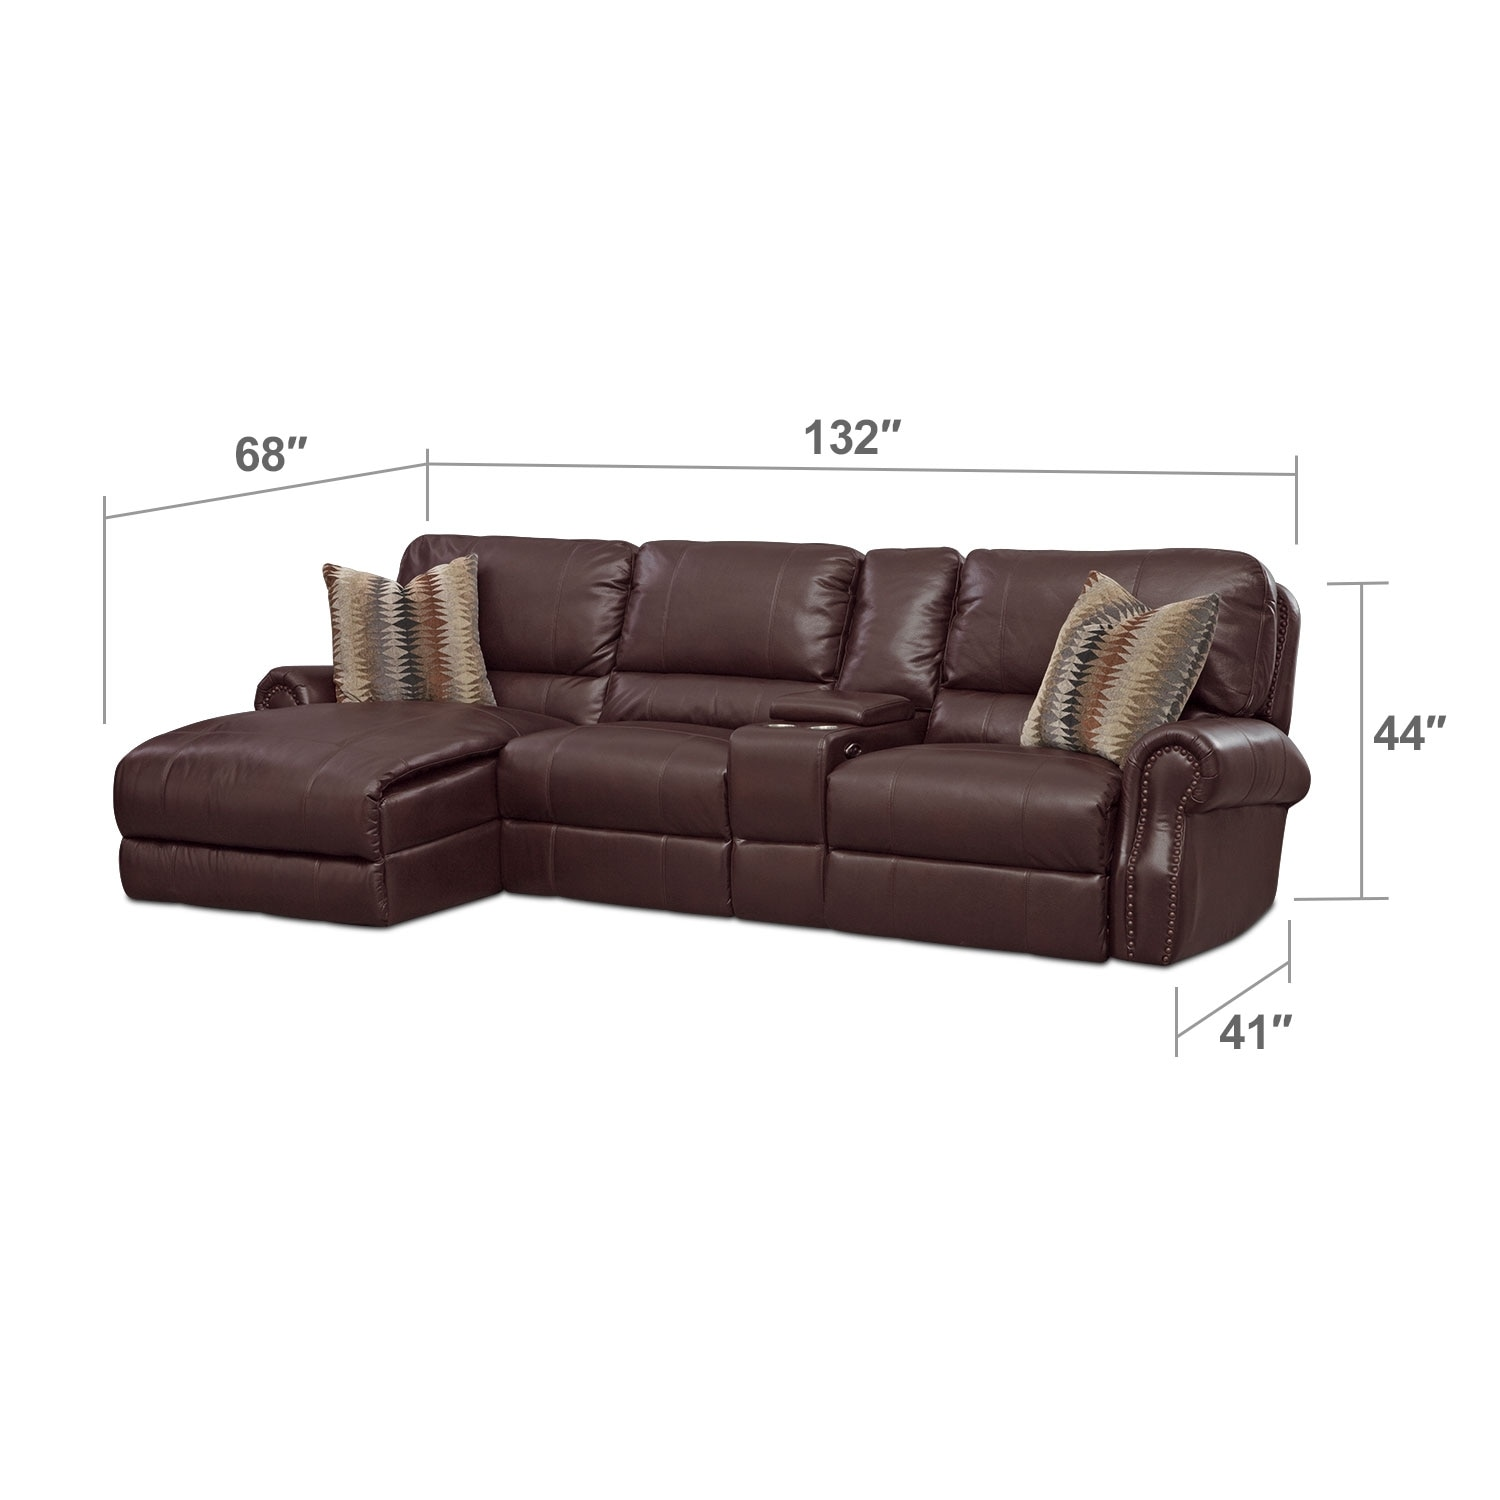 Living Room Furniture - Princeton 2-Piece Left-Facing Power Reclining Chaise Sectional - Brown